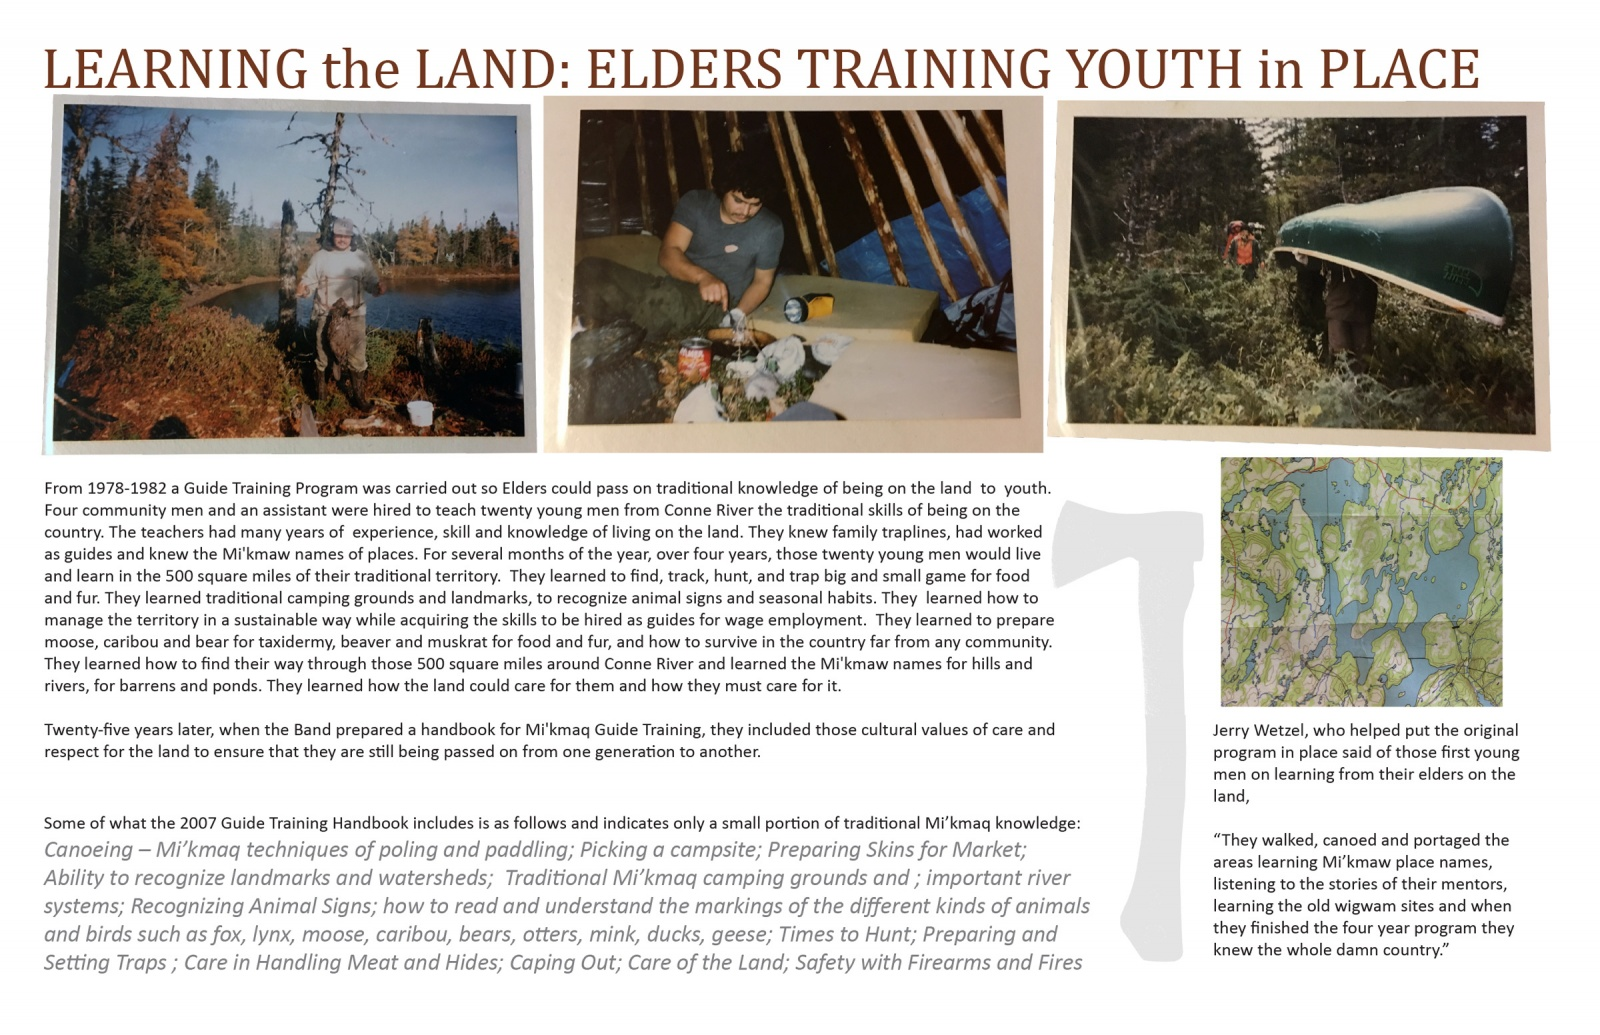 Learning the Land: Elders Training Youth in Place